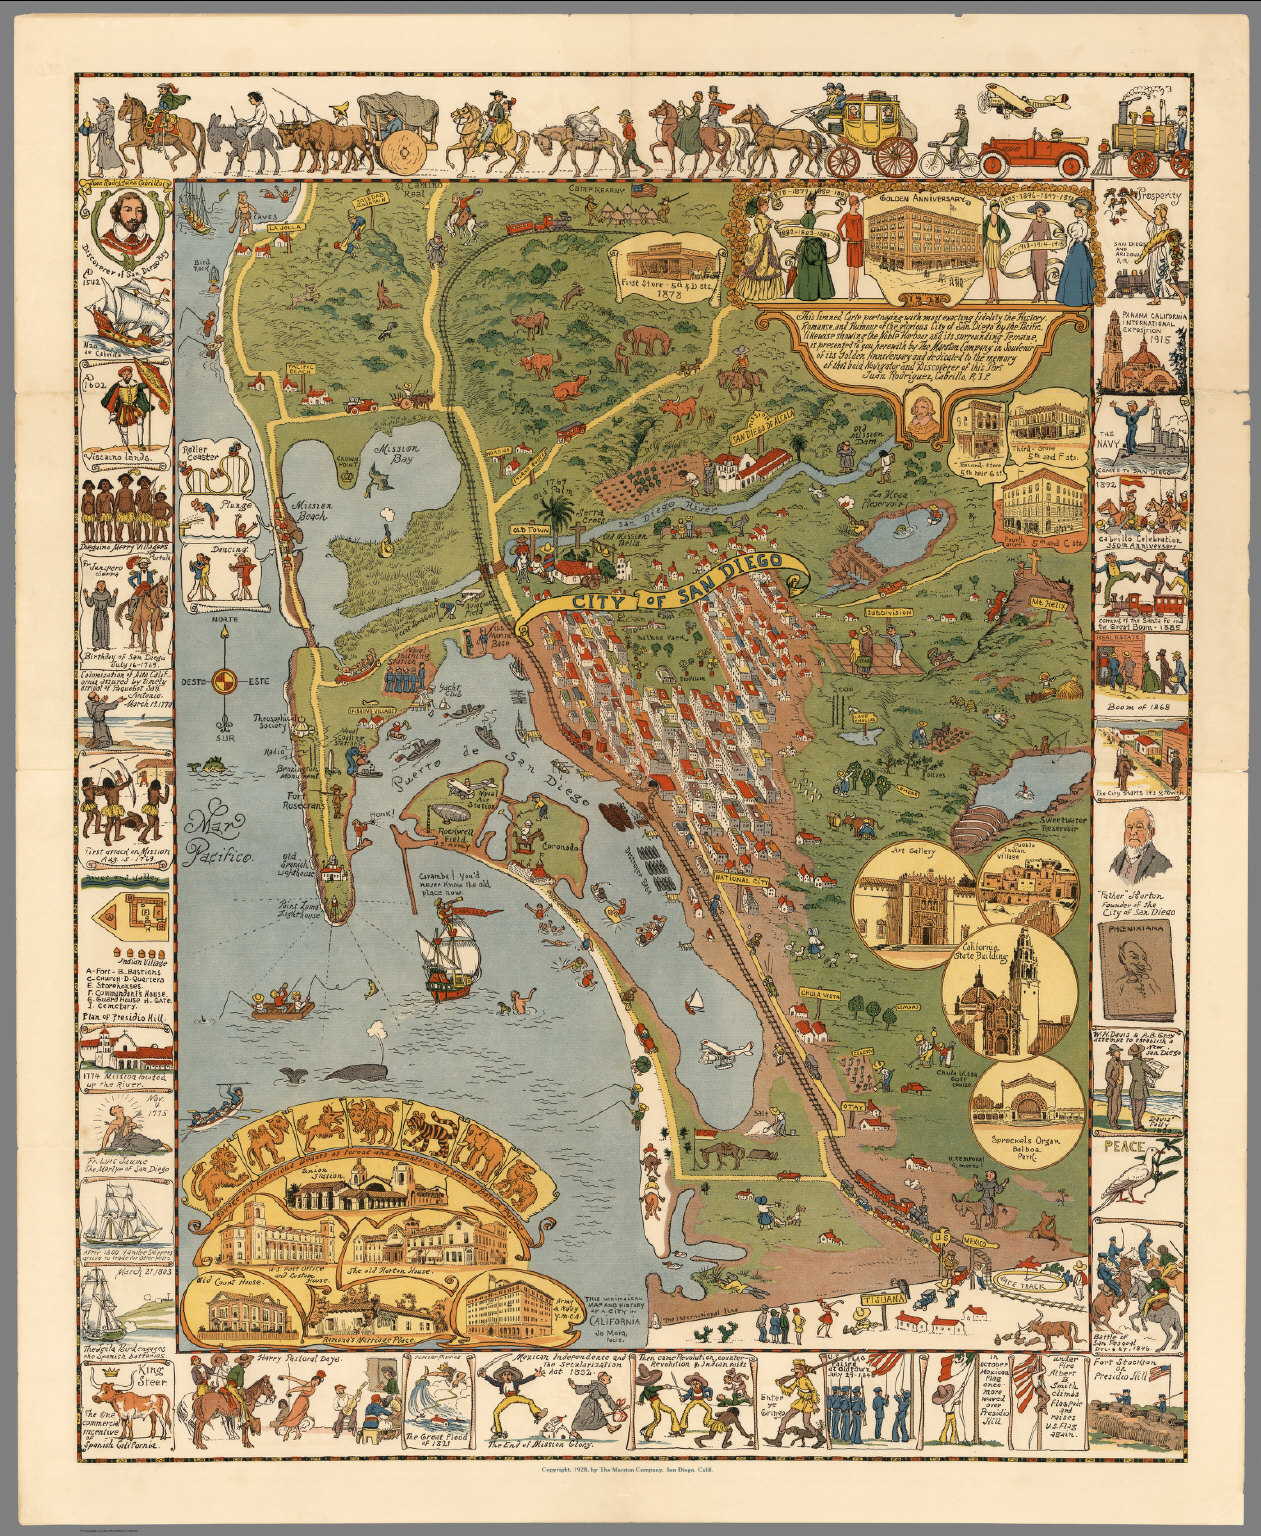 San Diego Map City.City Of San Diego David Rumsey Historical Map Collection